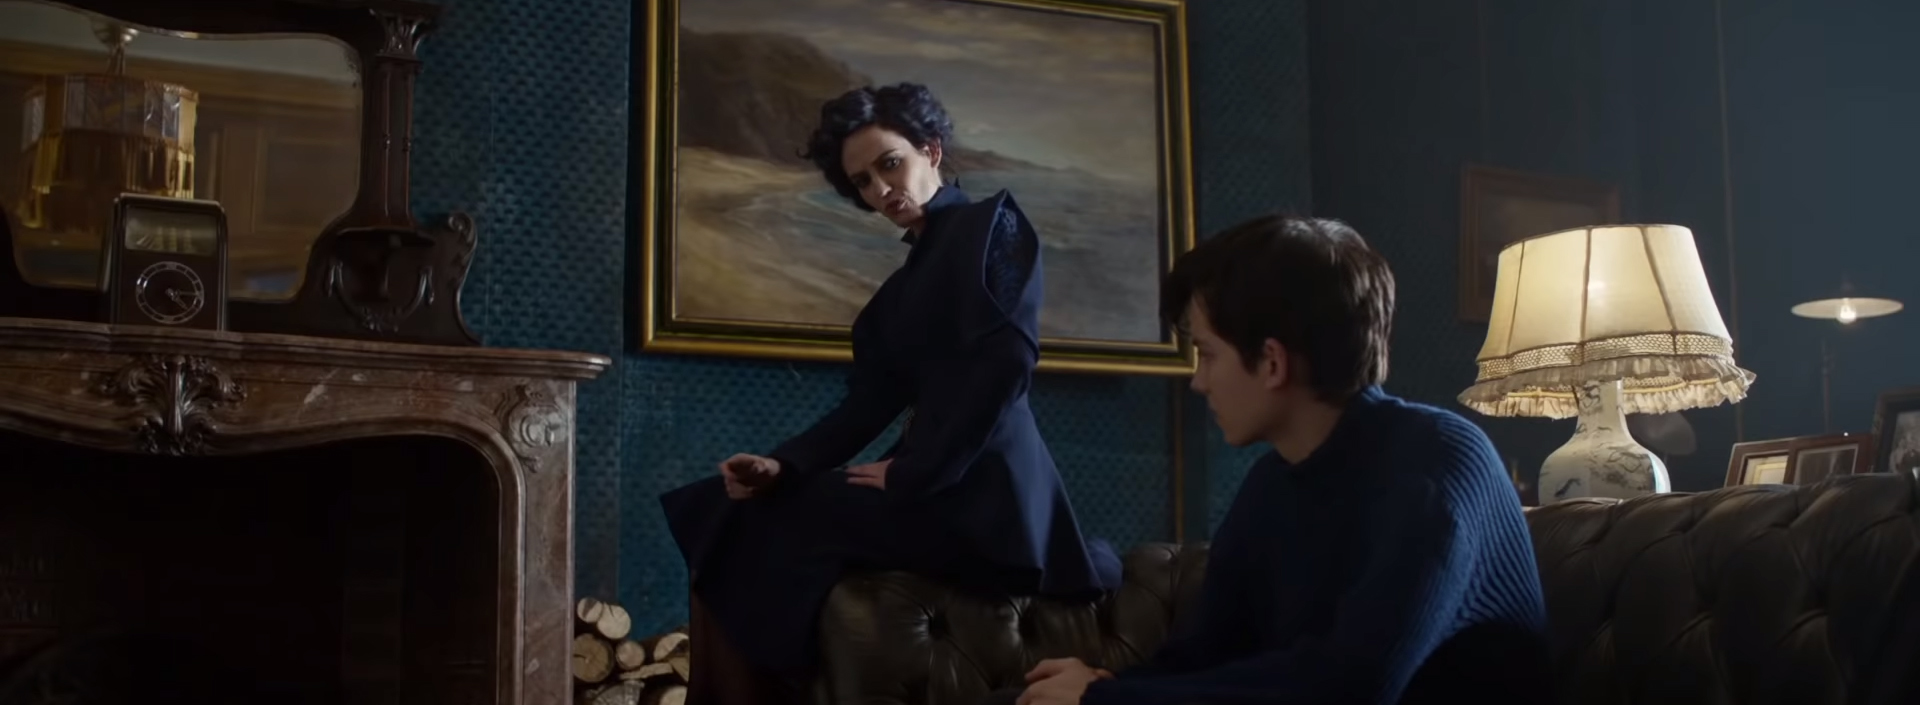 Miss Peregrine's Home for Peculiar Children. Image Credit: 20th Century Fox.